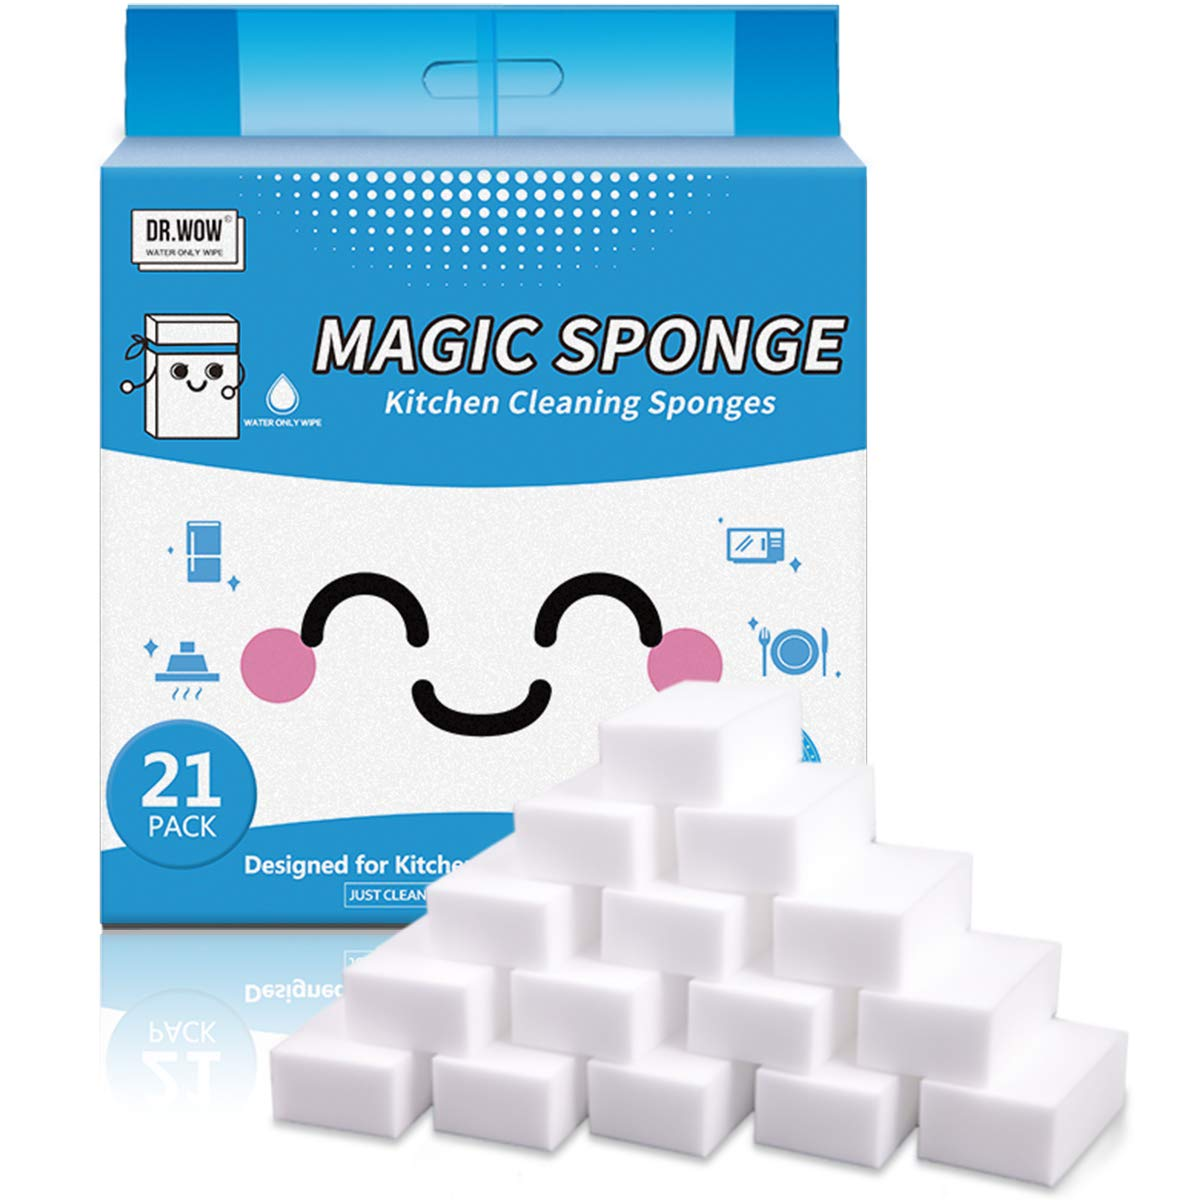 Dr.WOW 21 Pack Extra Thick Magic Sponge,Great Price Melamine Sponge - 2X Thicken 2X Long Lasting Cleaning,Eraser Sponge in Kitchen Air Fryers, Bathroom, Office Work Well